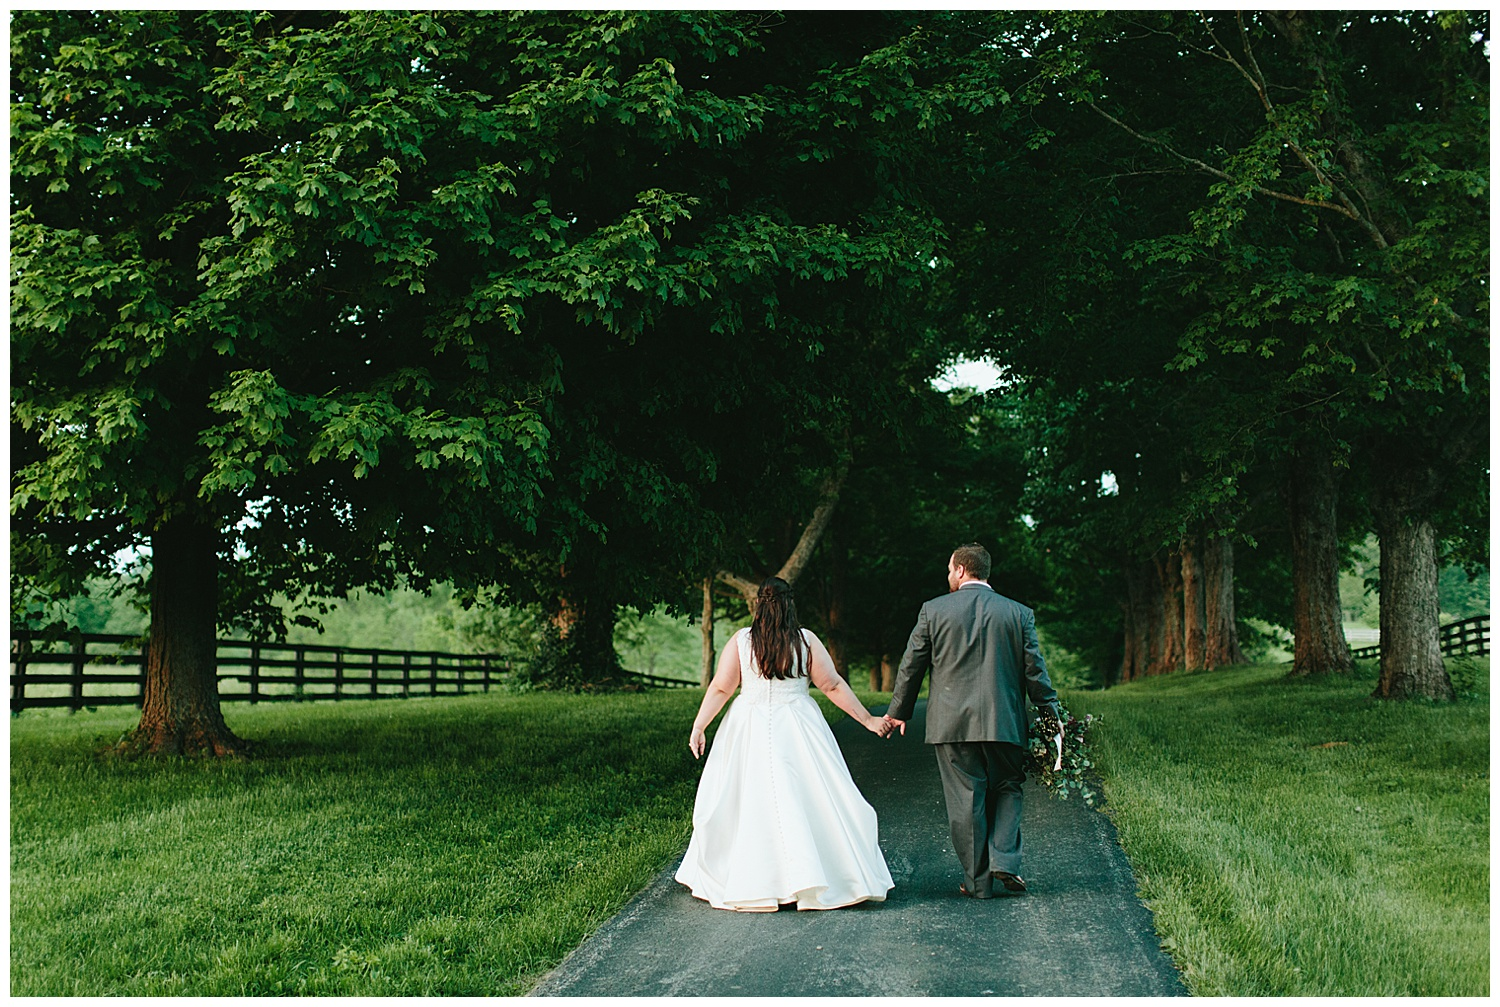 Eden sPRINGS fARMSTEAD wEDDING